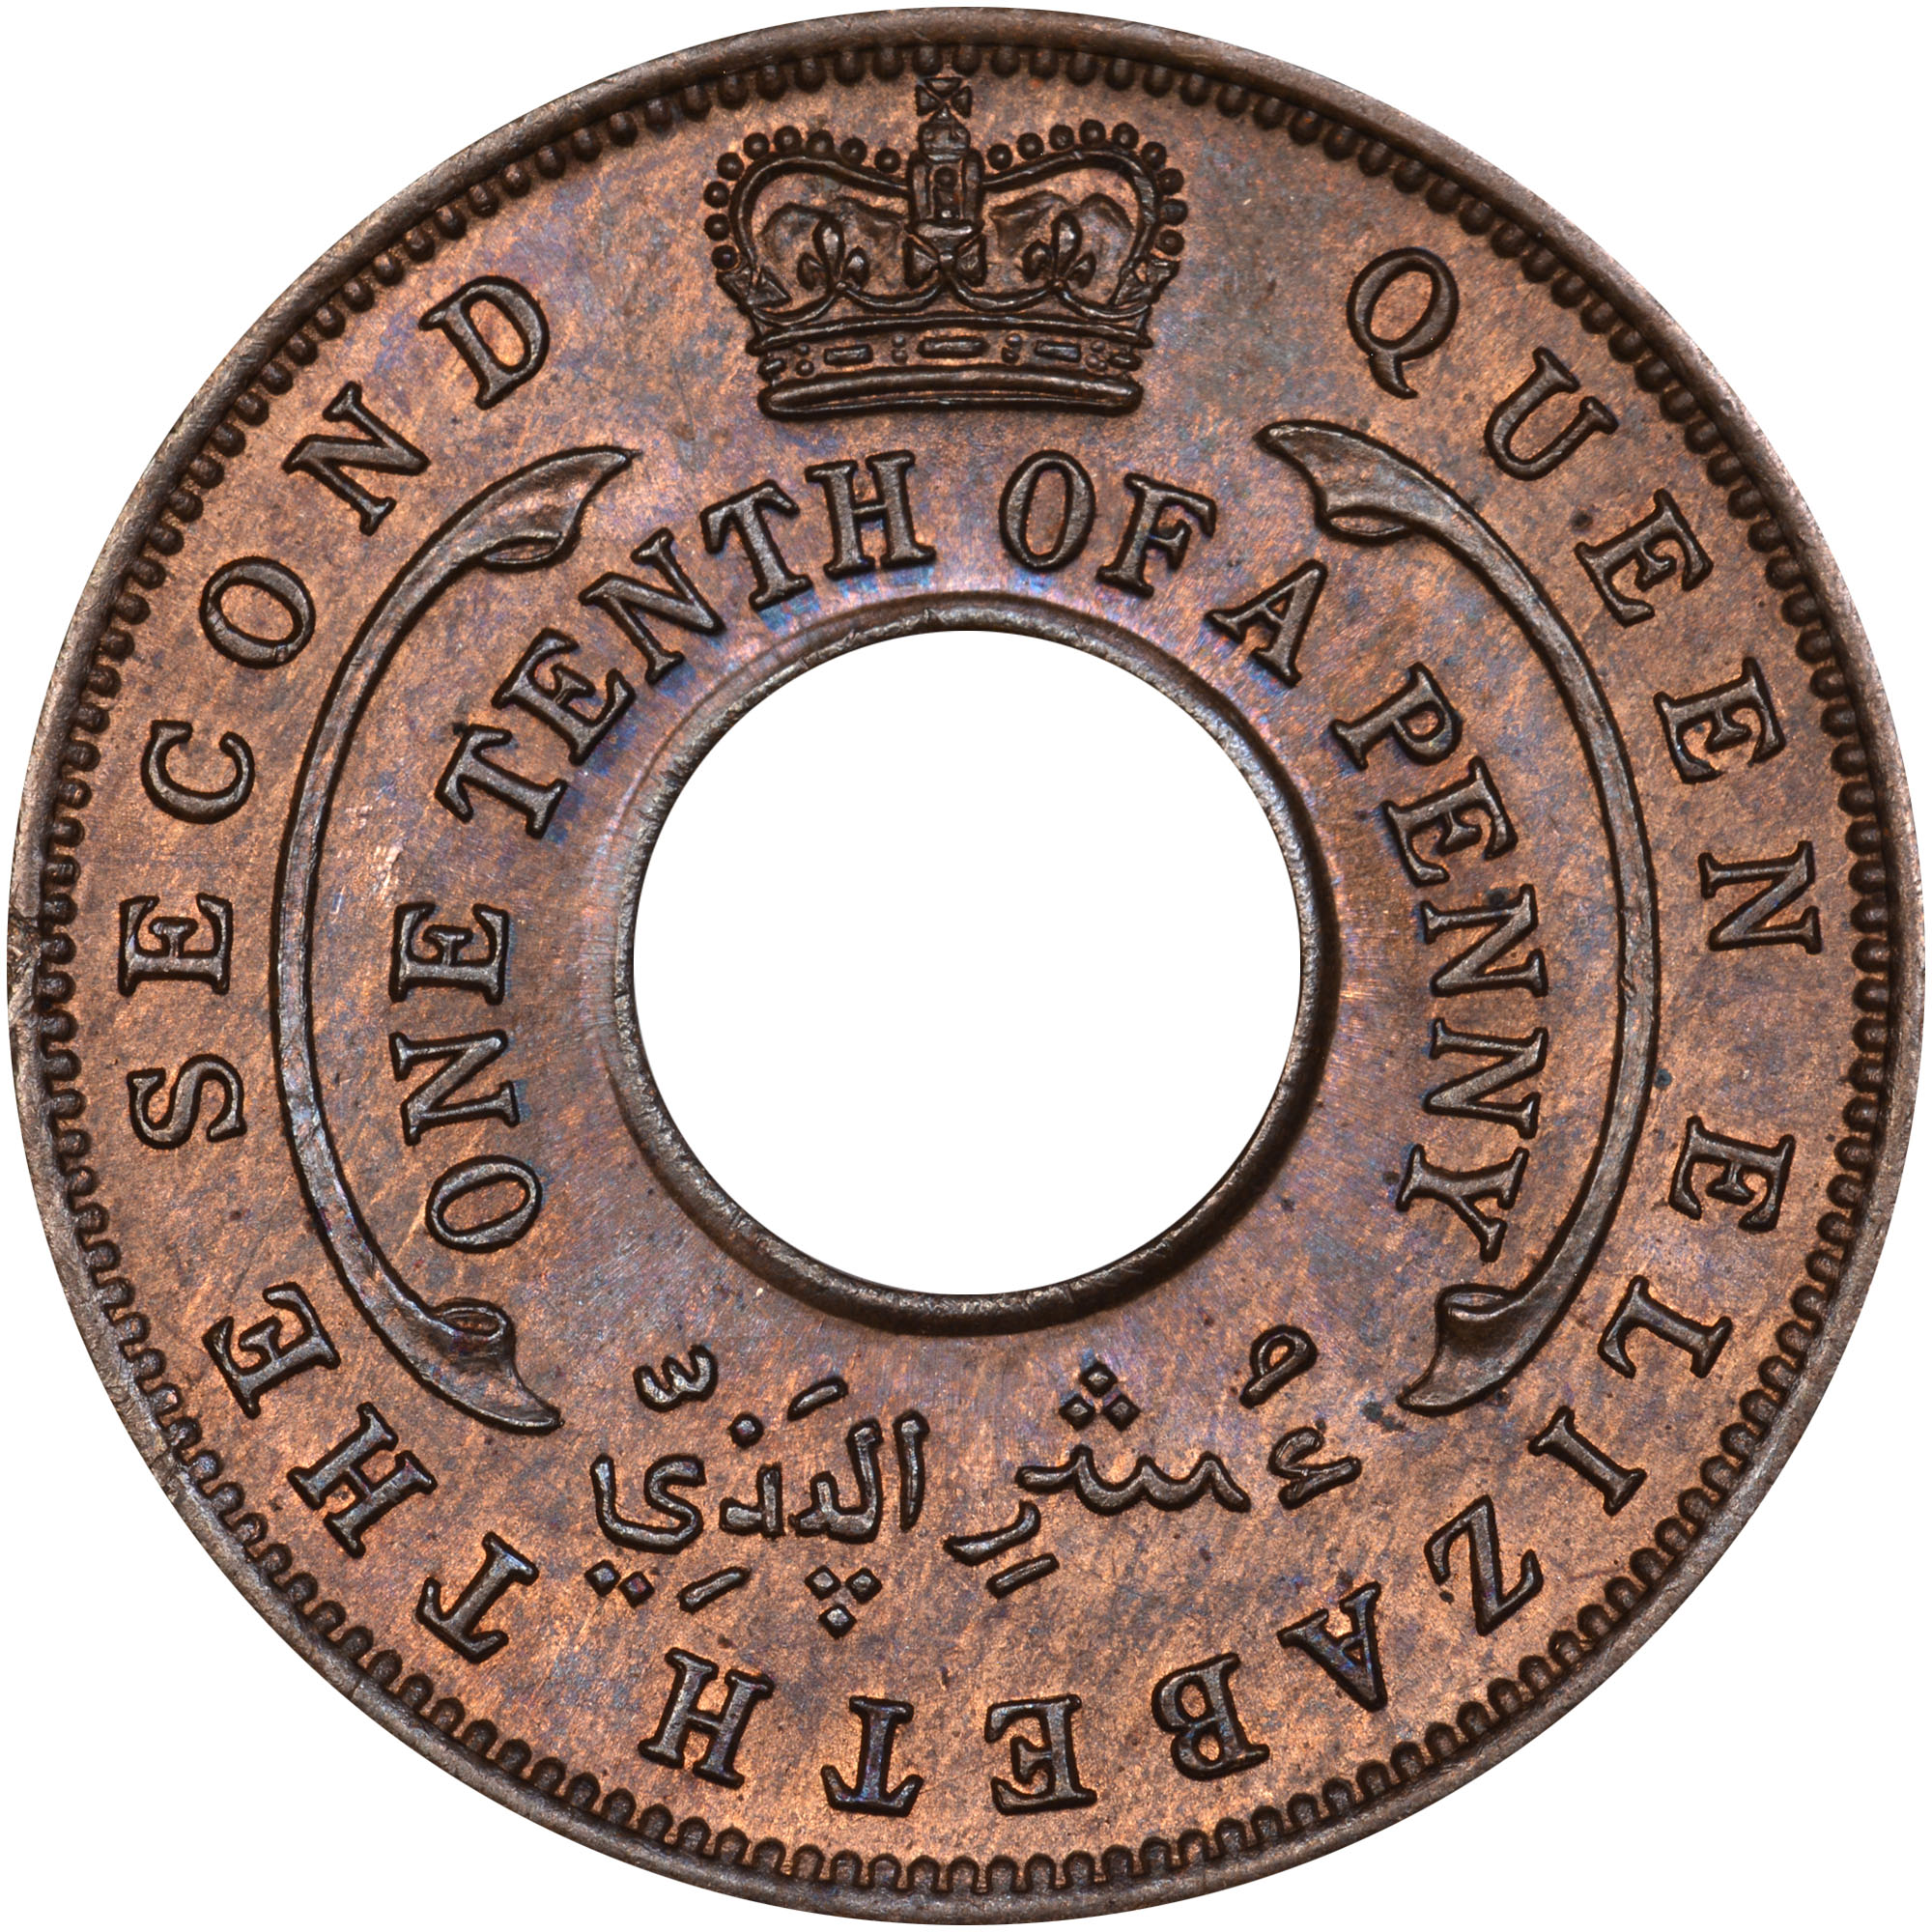 1954-1957 British West Africa 1/10 Penny obverse